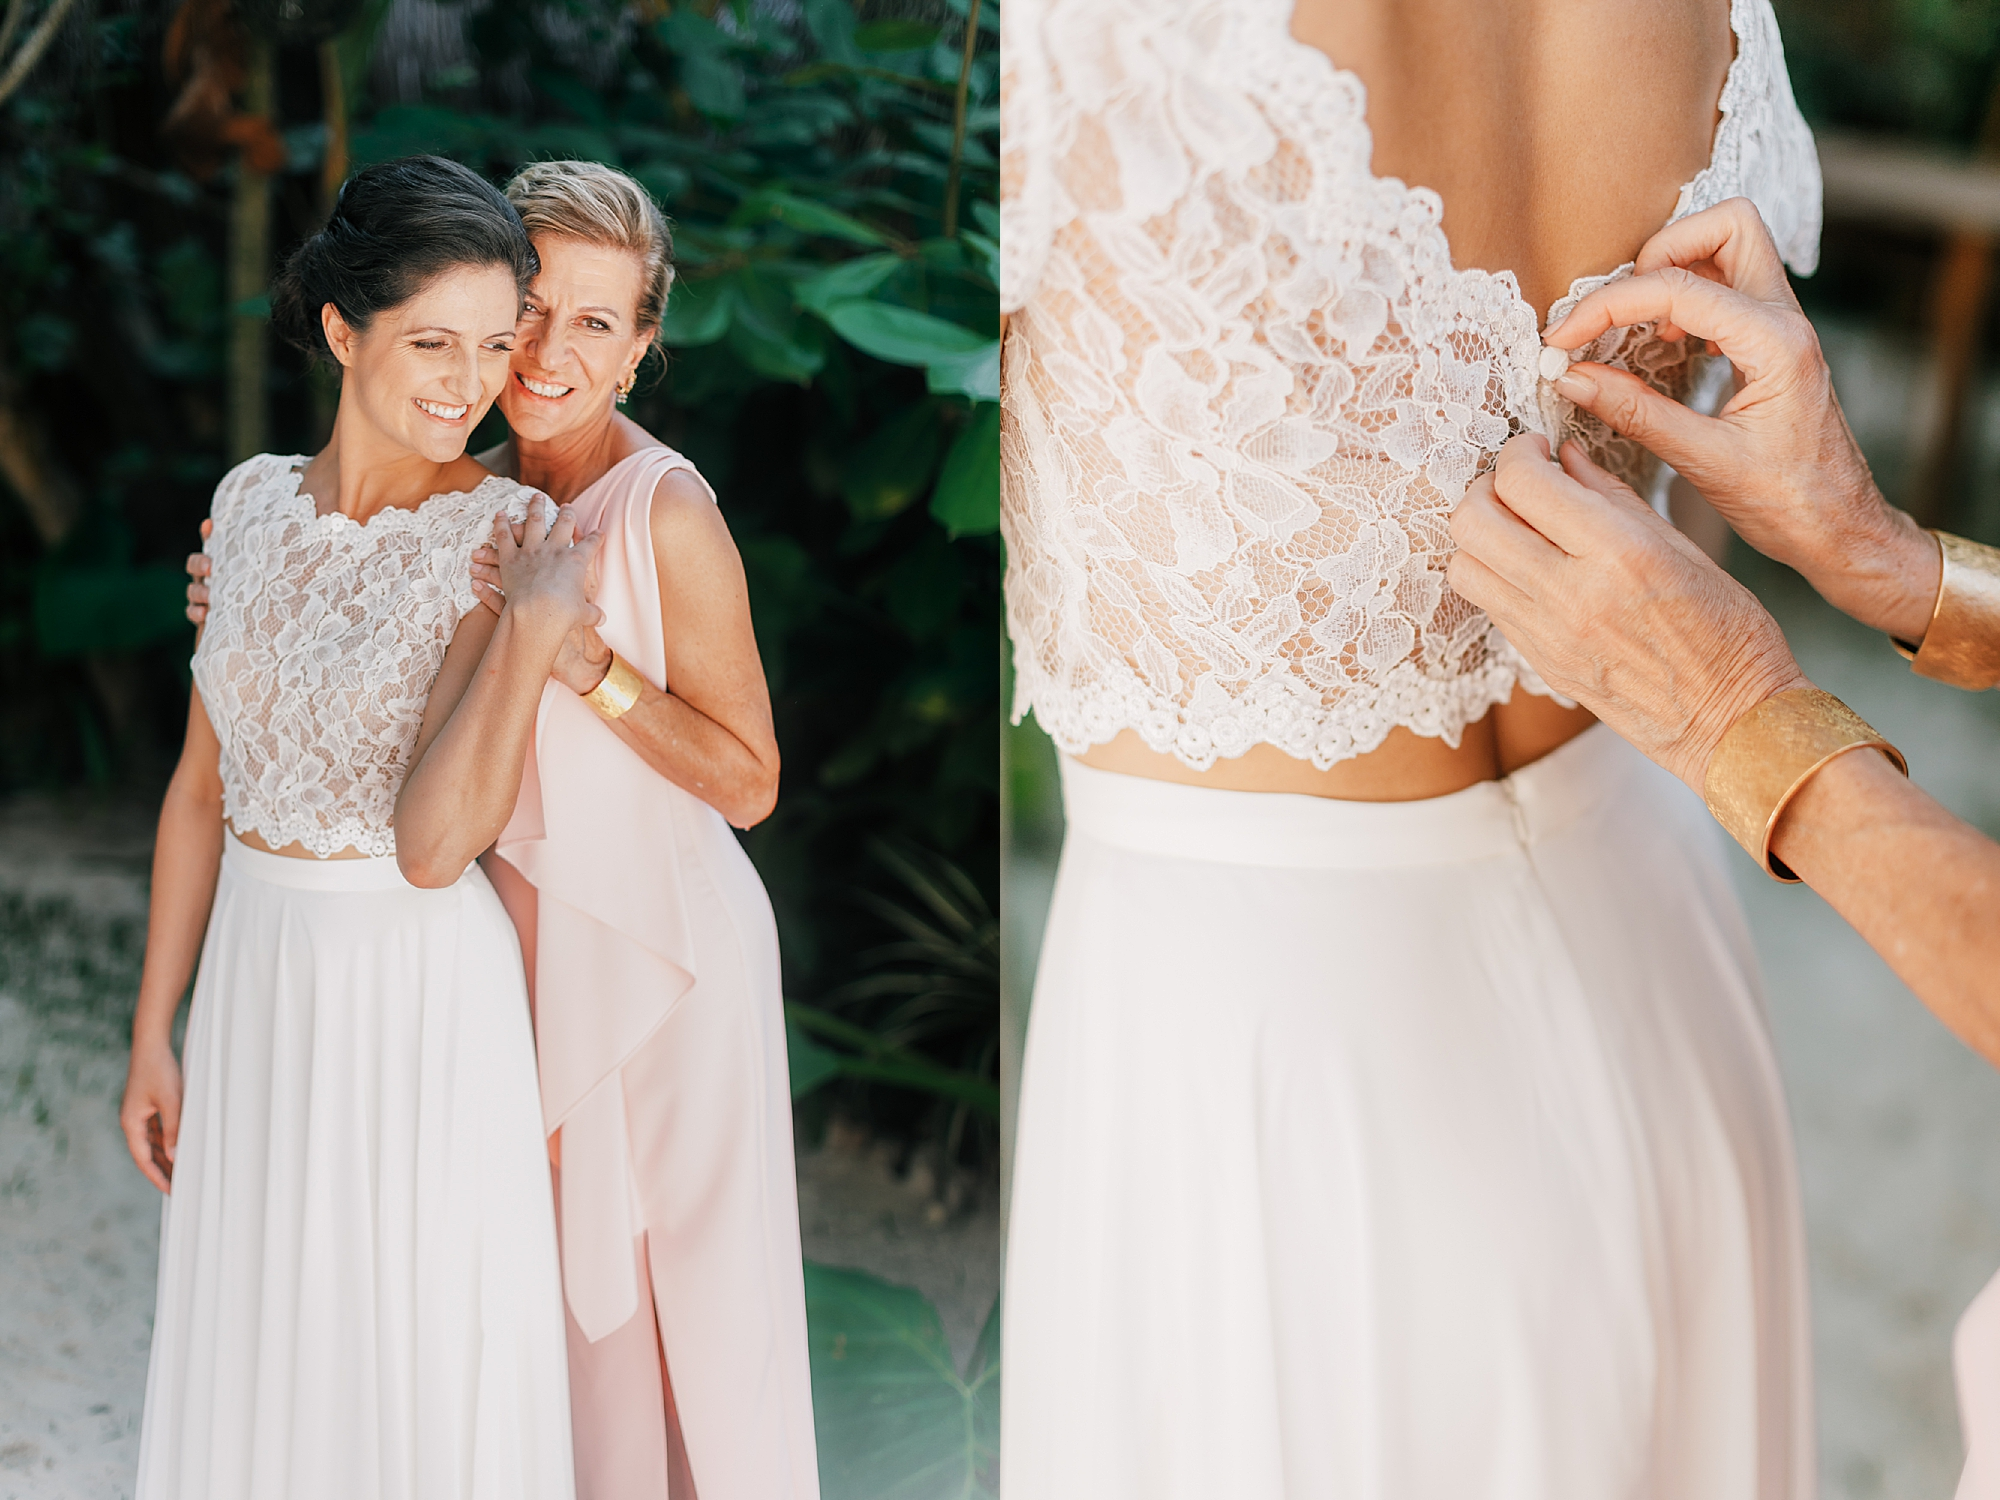 Stylish and Candid Destination Film Wedding Photography in Tulum Mexico by Magdalena Studios 0006.